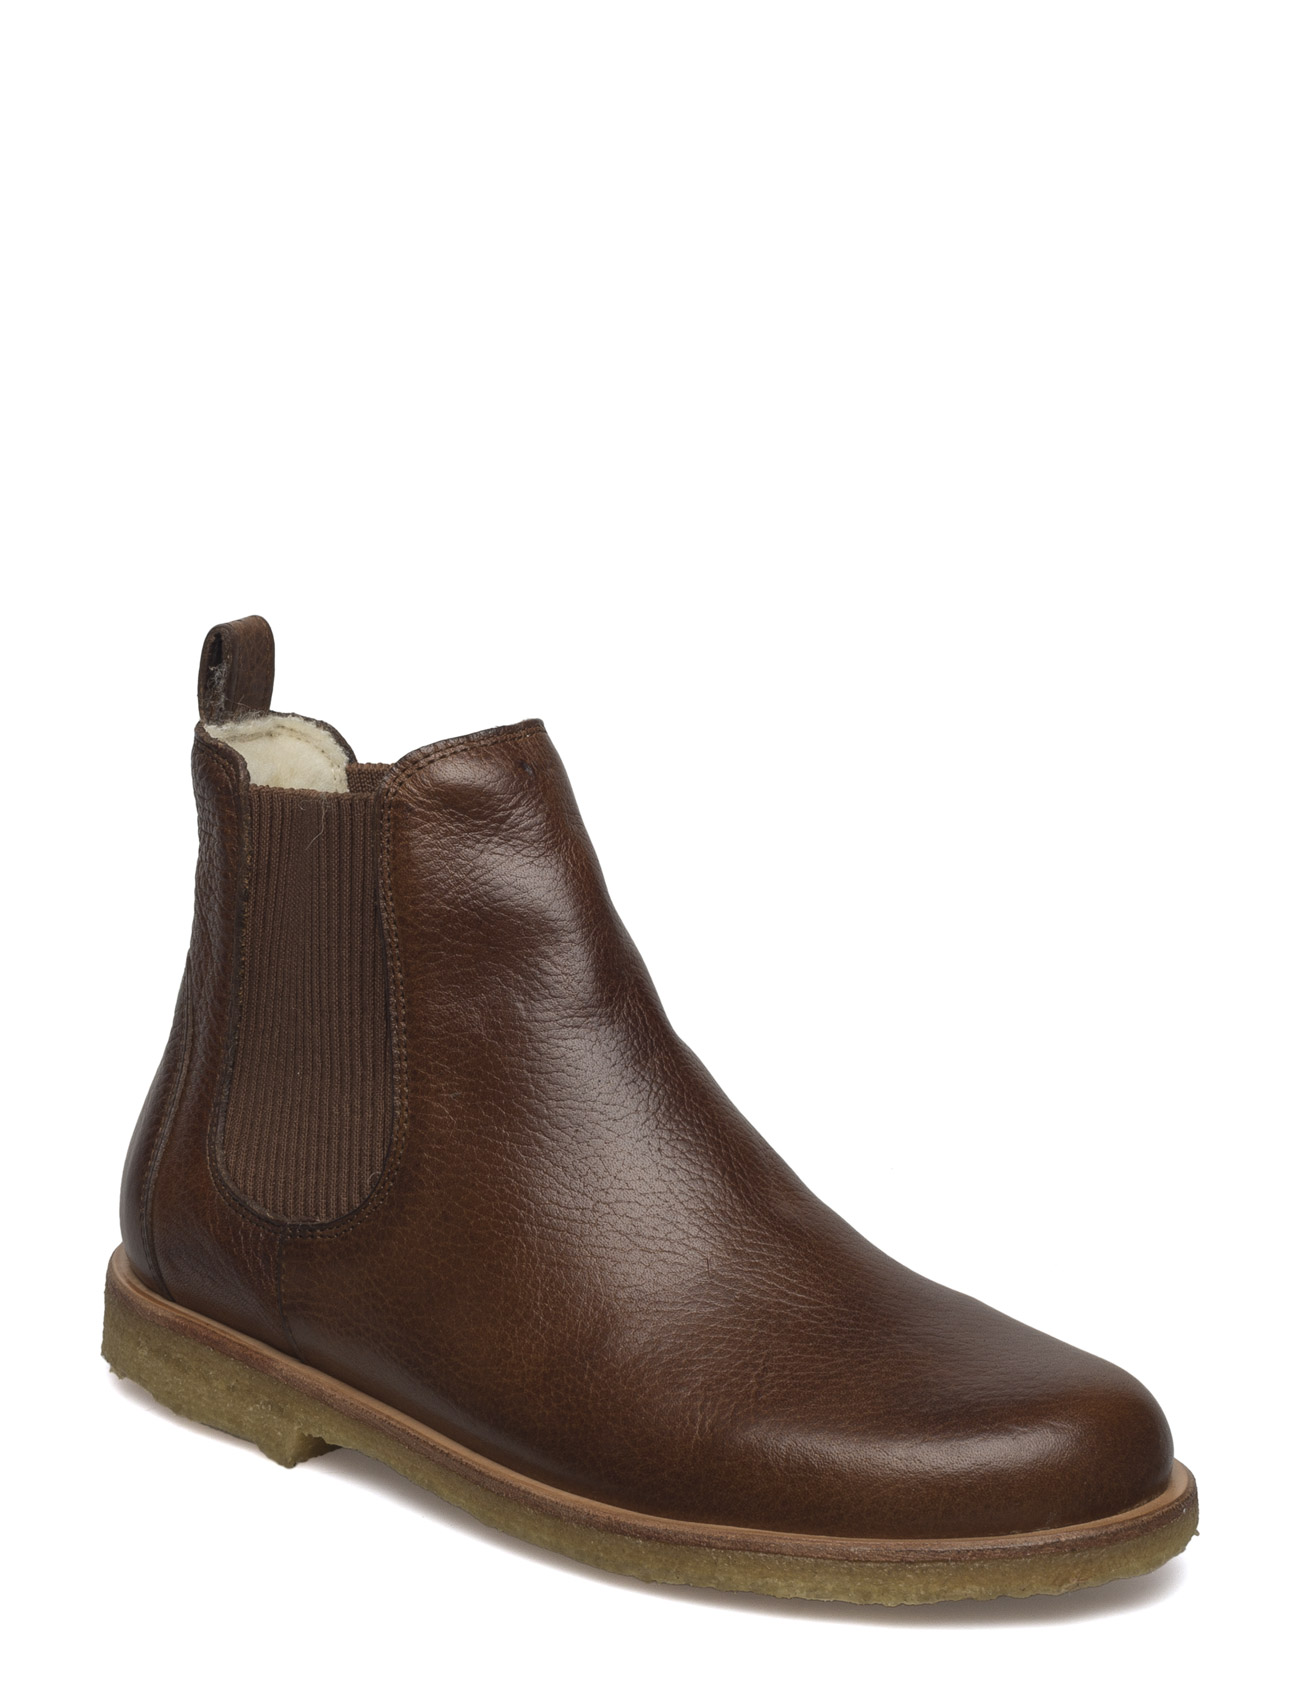 ANGULUS Chelsea boot - 2509/040 MEDIUM BROWN/ COGNAC